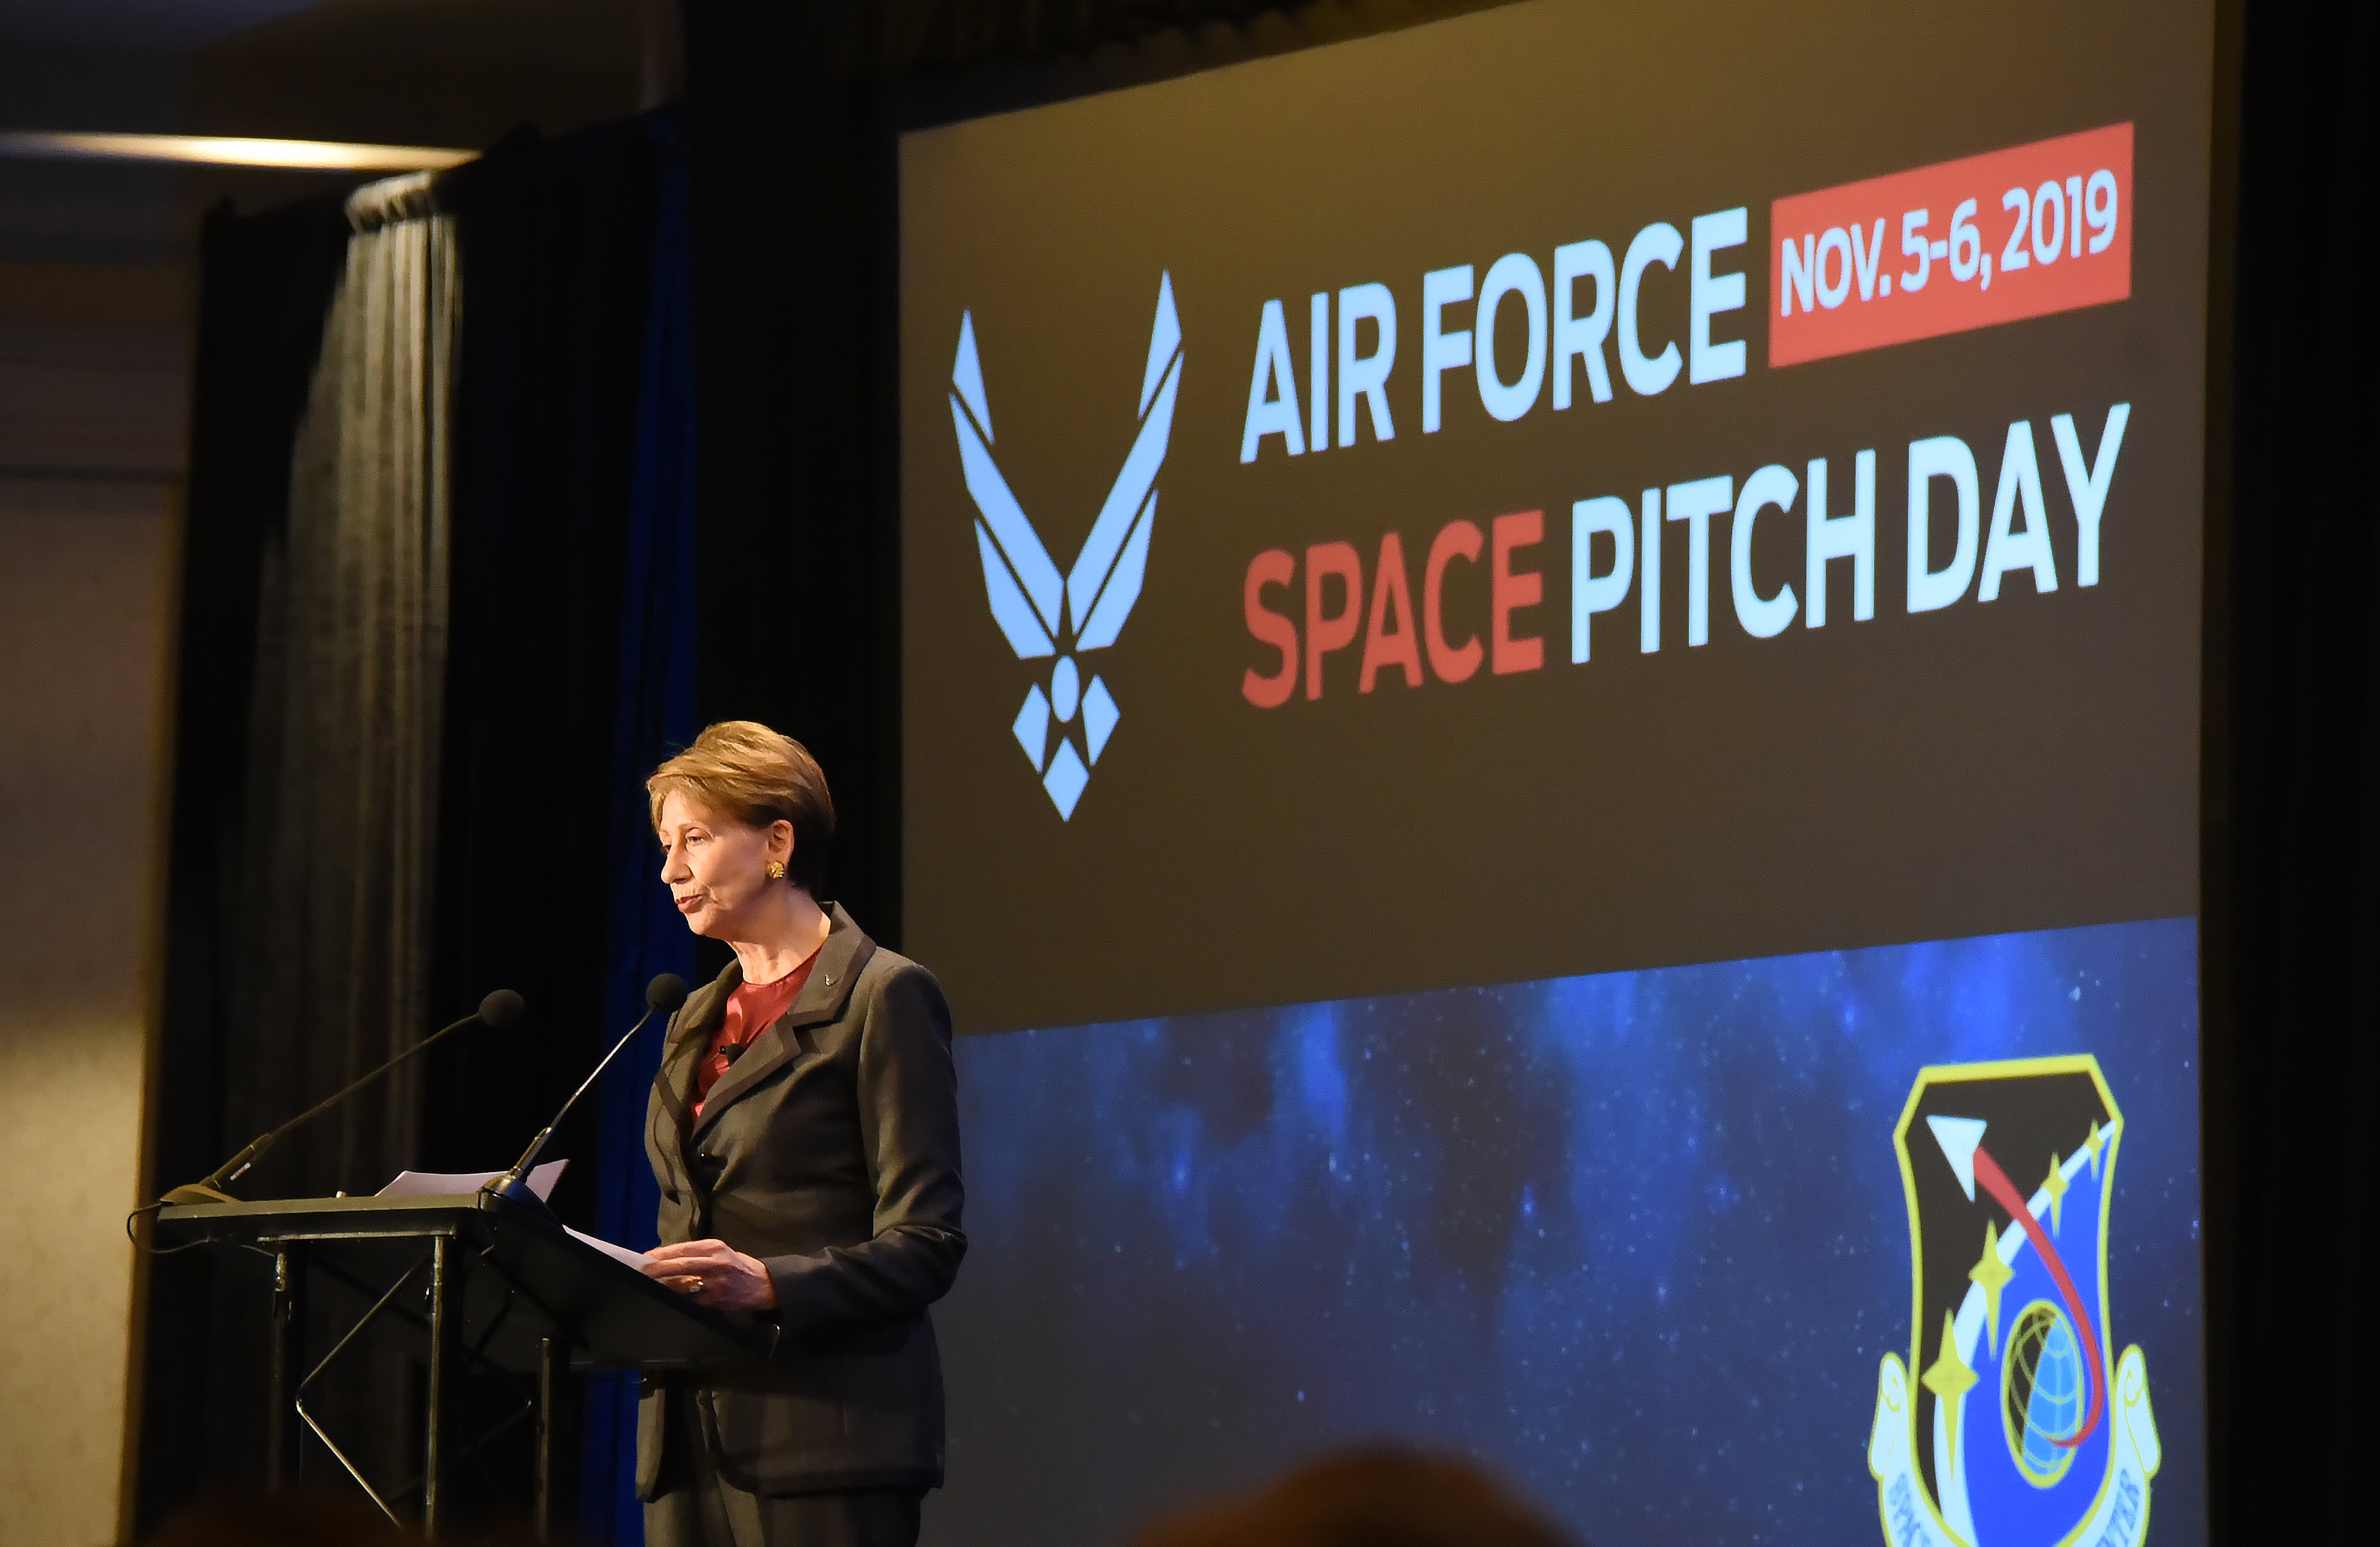 In break from typical contract process, Air Force awards more than $20 million from hotel ballroom